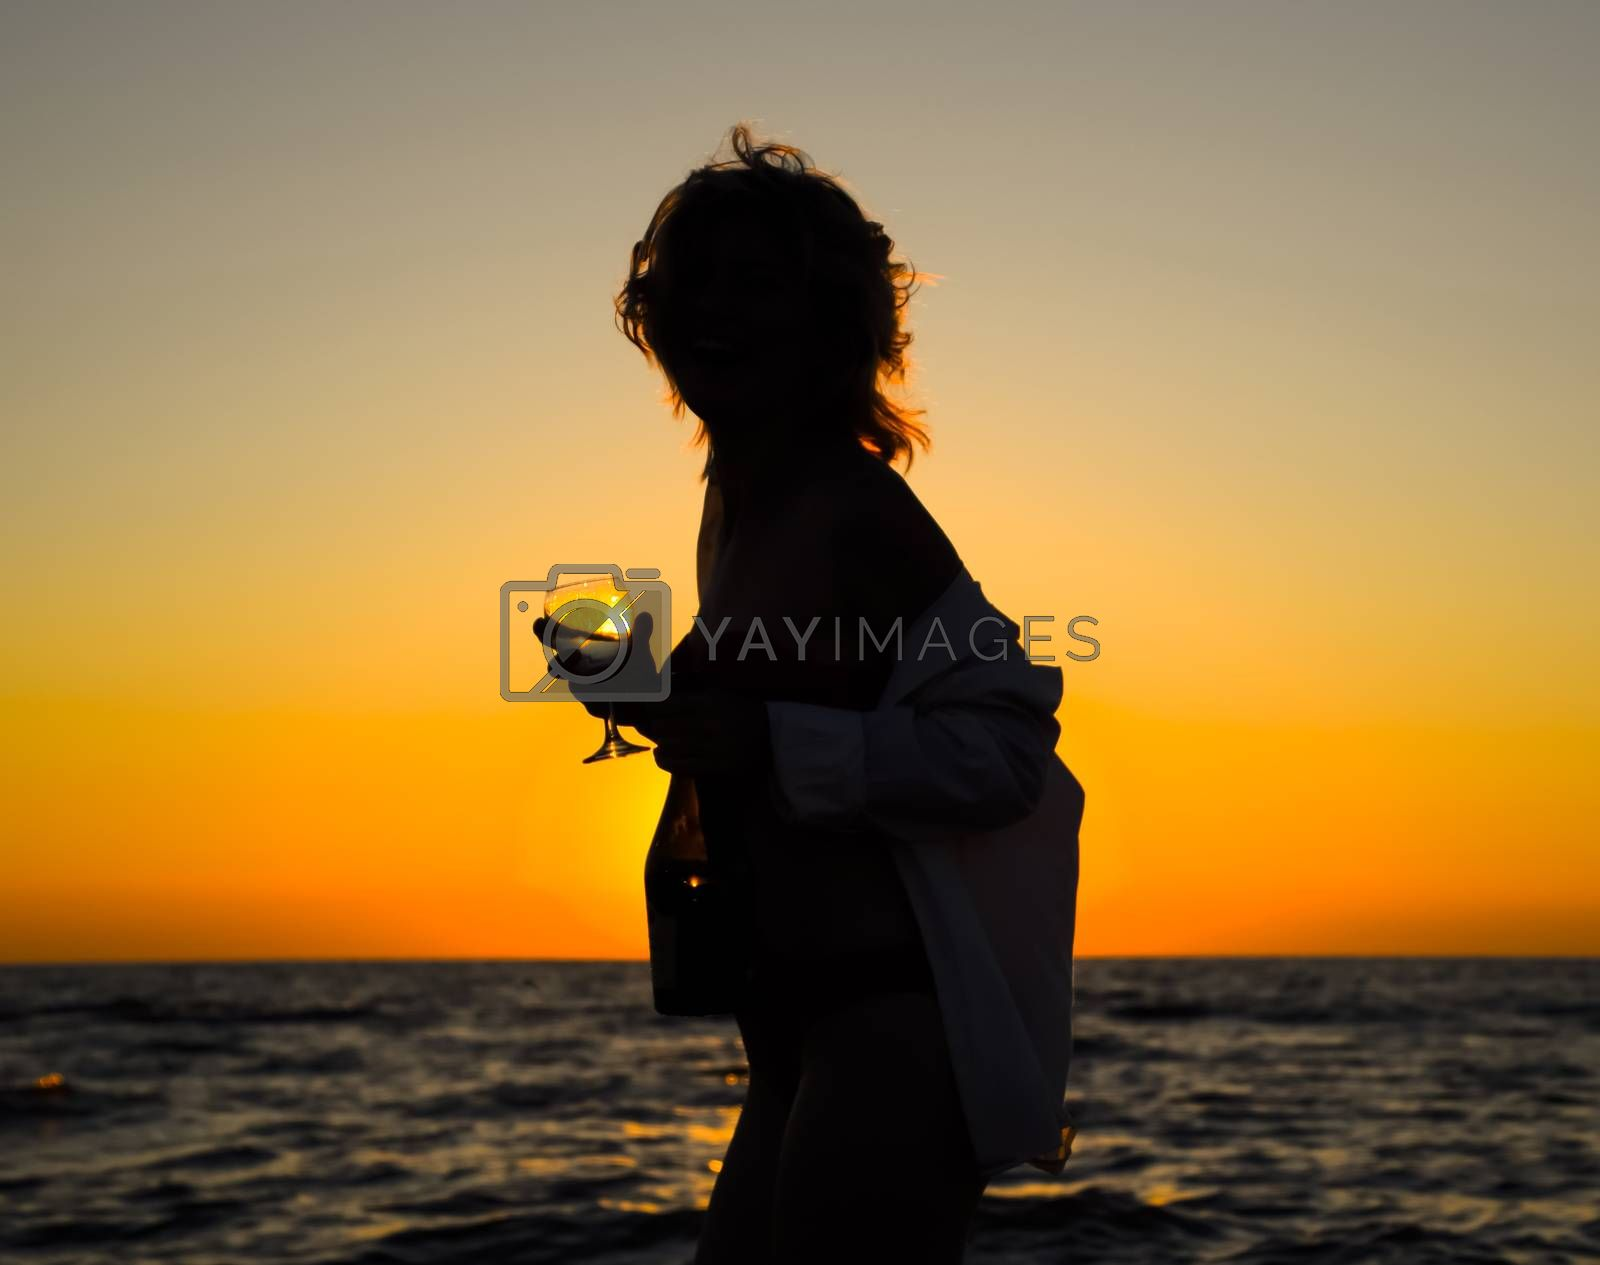 girl on a sunset background with a glass of champagne at sea.